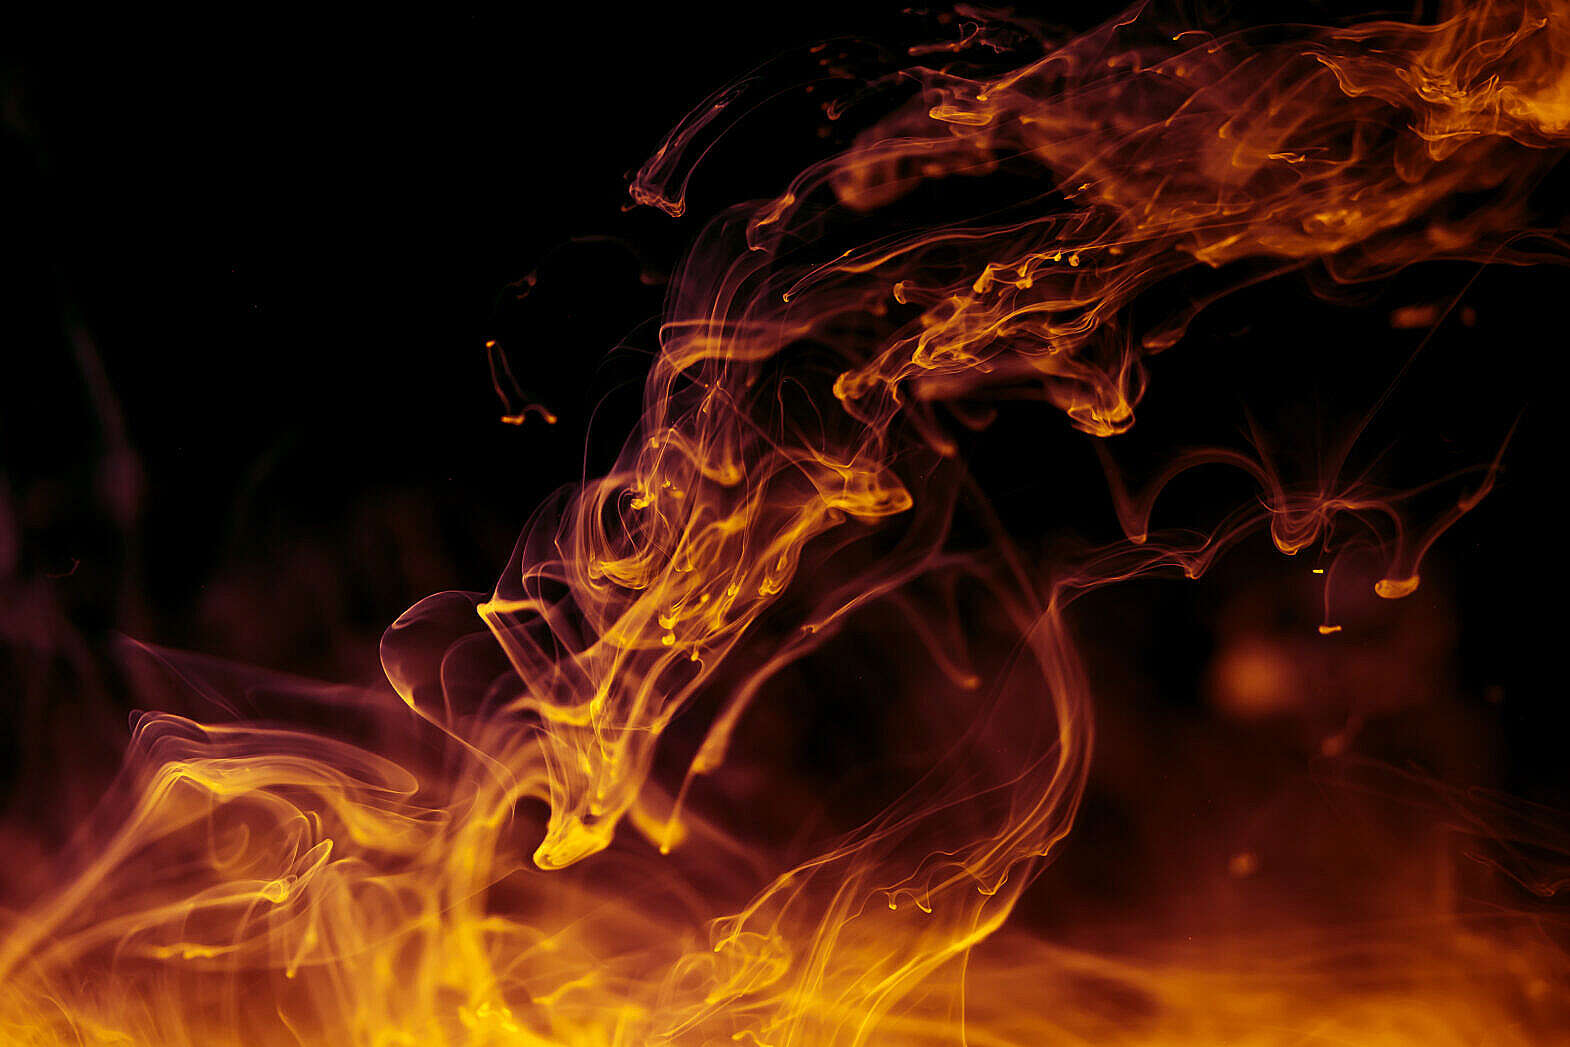 Abstract Fire Free Stock Photo | picjumbo